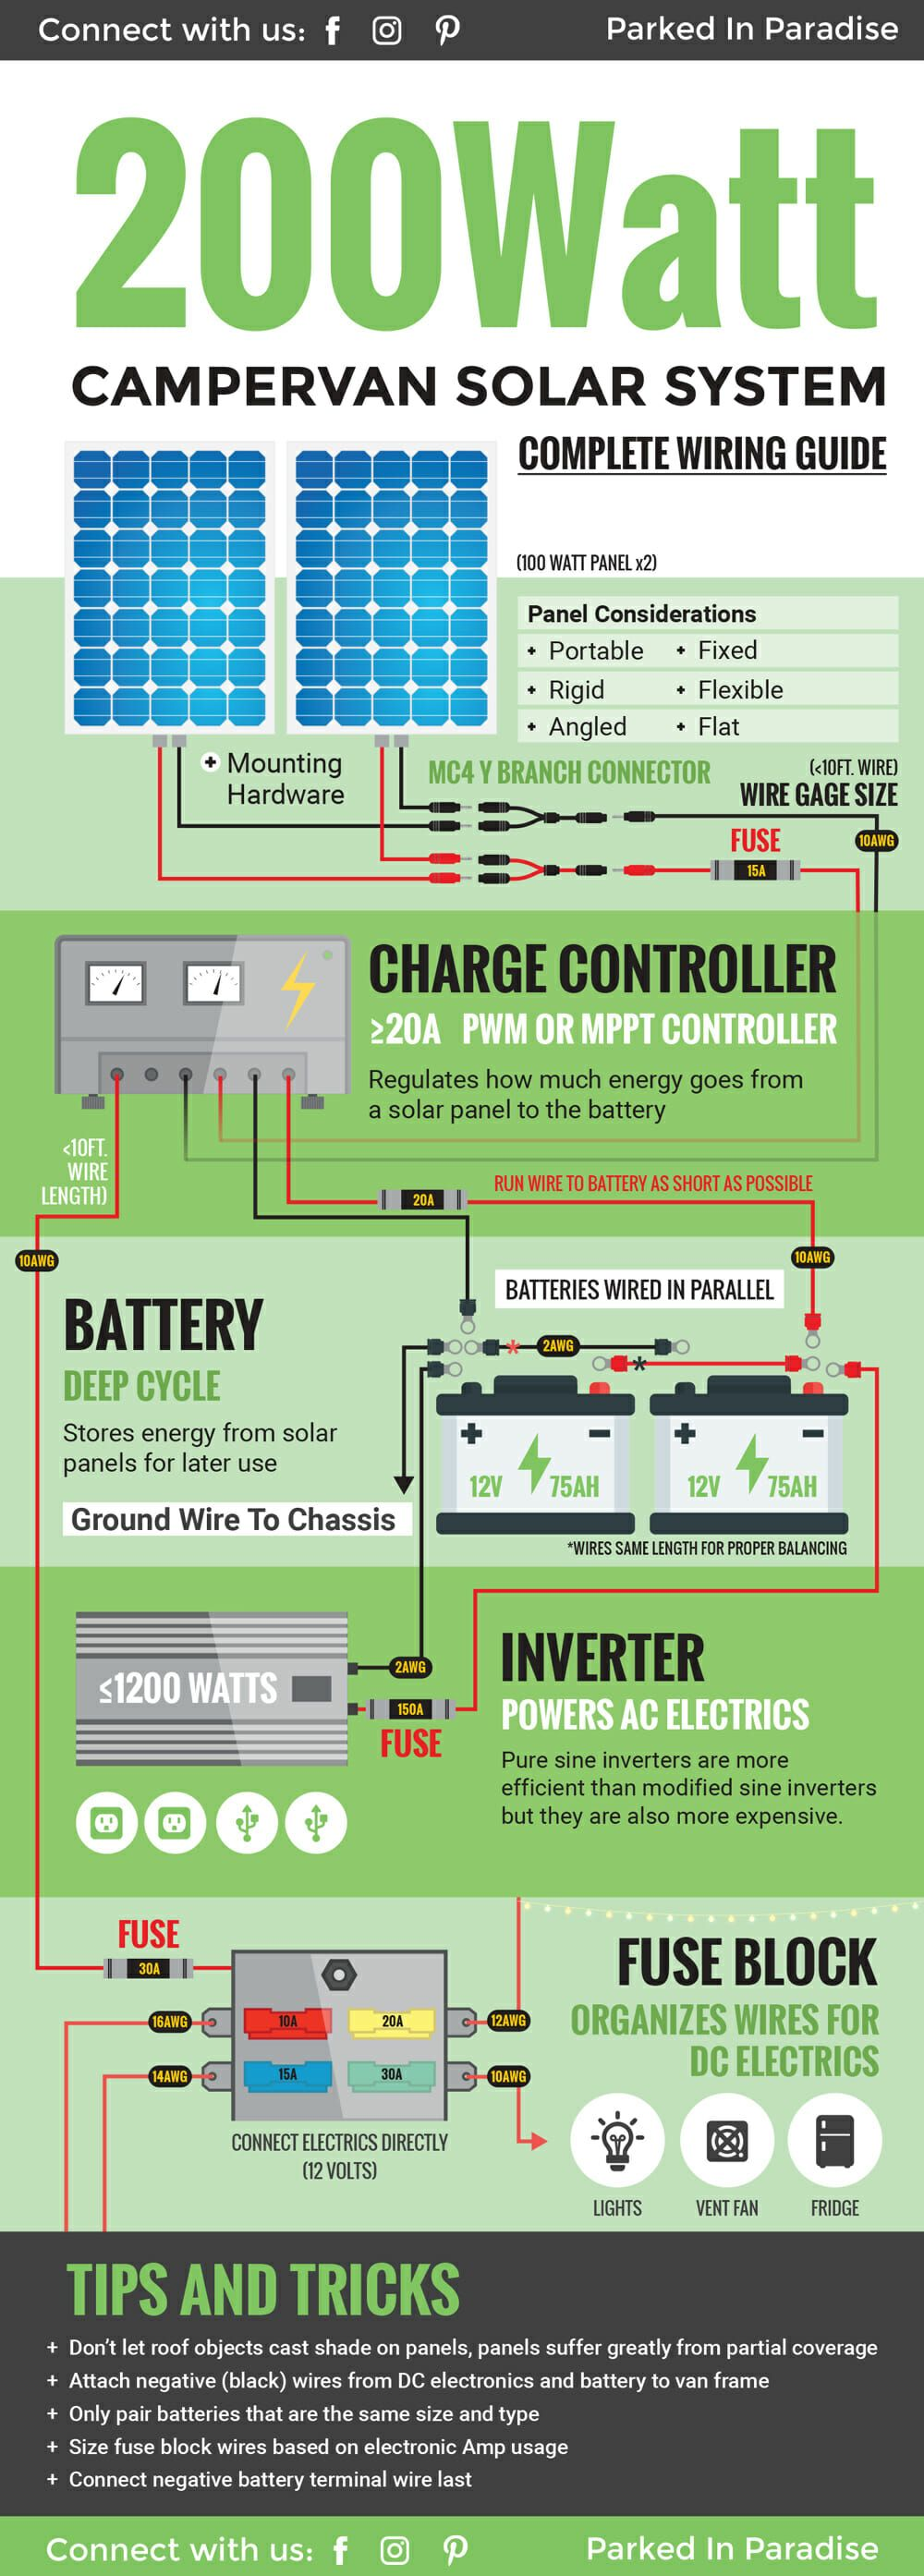 complete diy wiring guide for a 200 watt solar panel system perfect for a campervan [ 1000 x 2788 Pixel ]